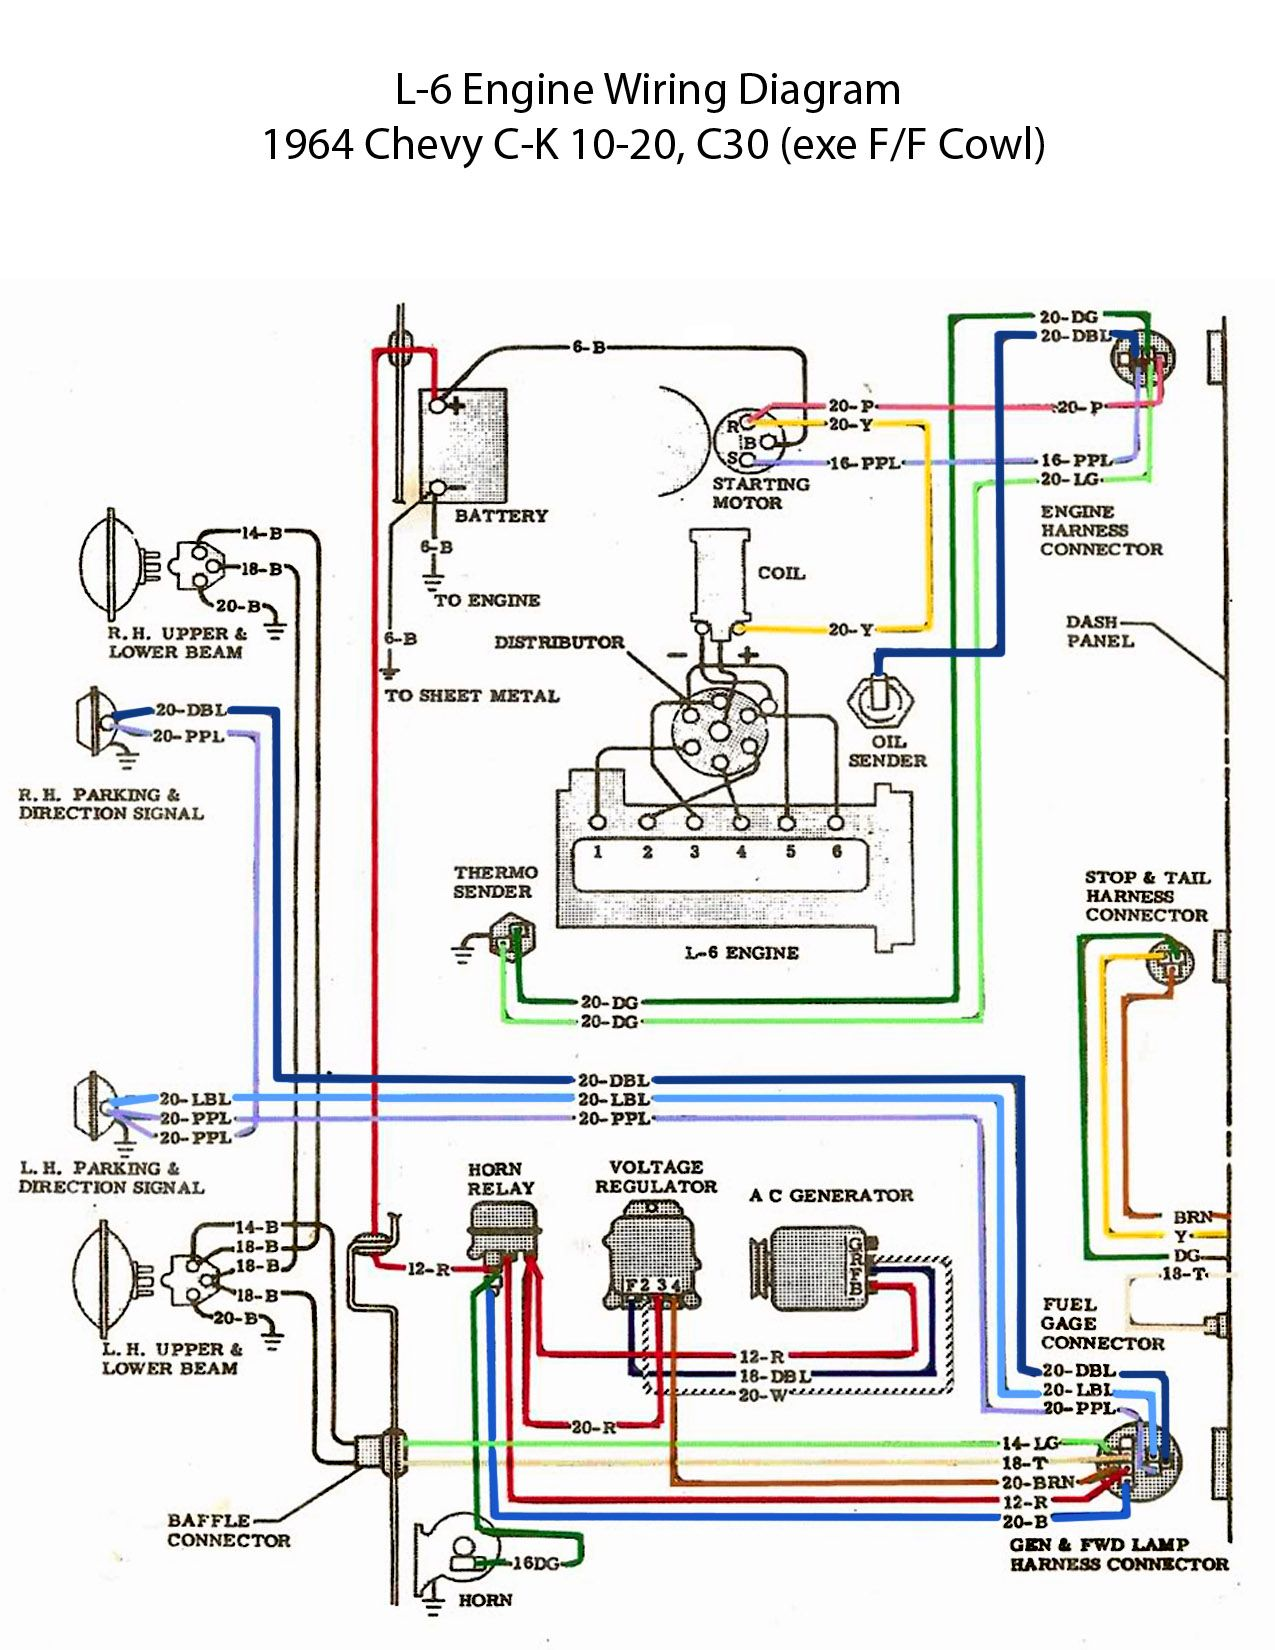 electric l 6 engine wiring diagram \u002760s chevy c10 1966 chevy truck ignition switch wiring diagram rewire from generator to alternator